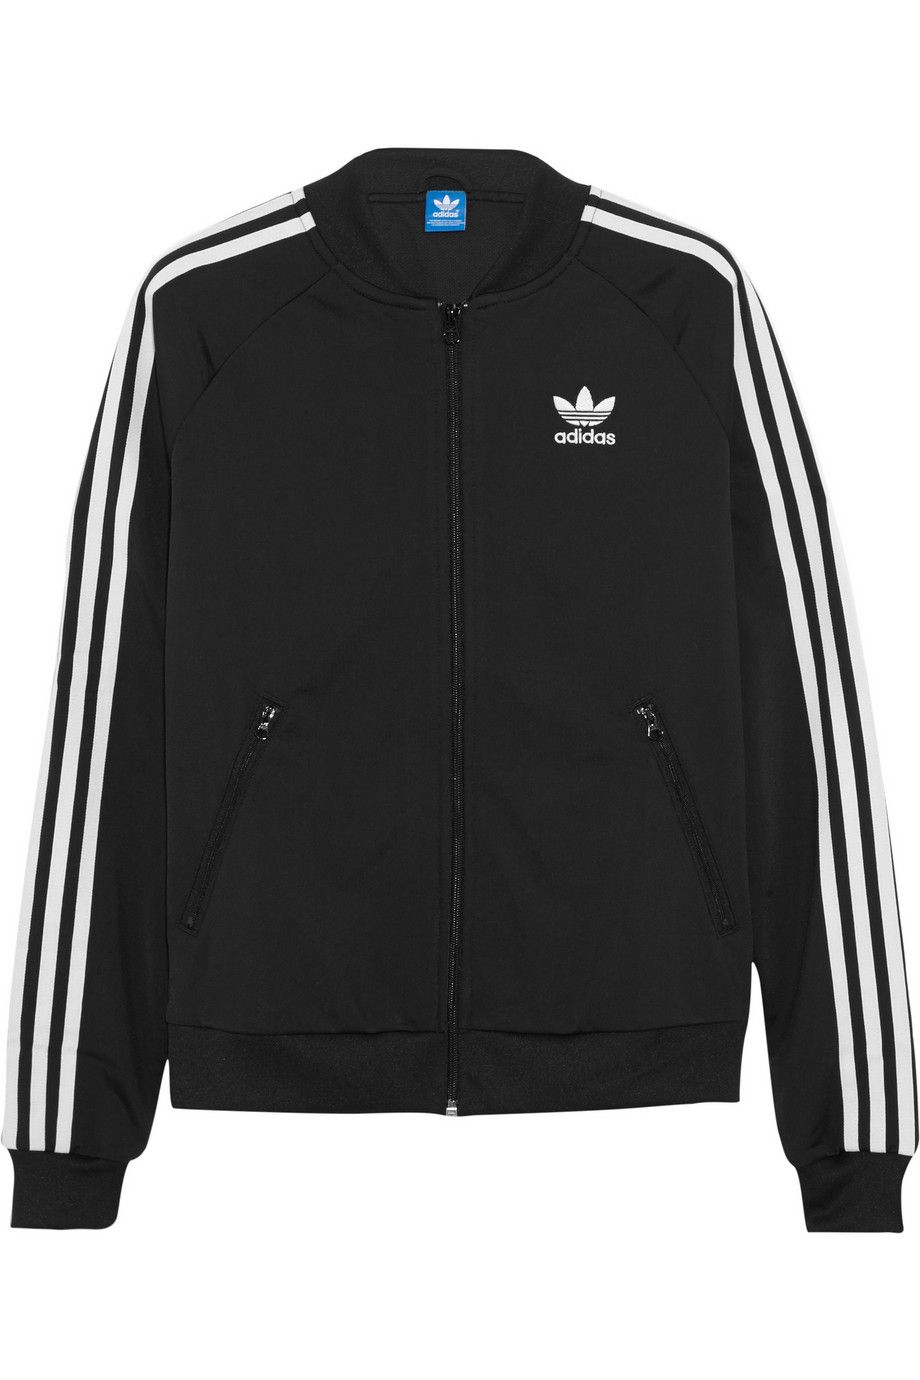 adidas Originals | Superstar Track satin-jersey jacket | NET ...